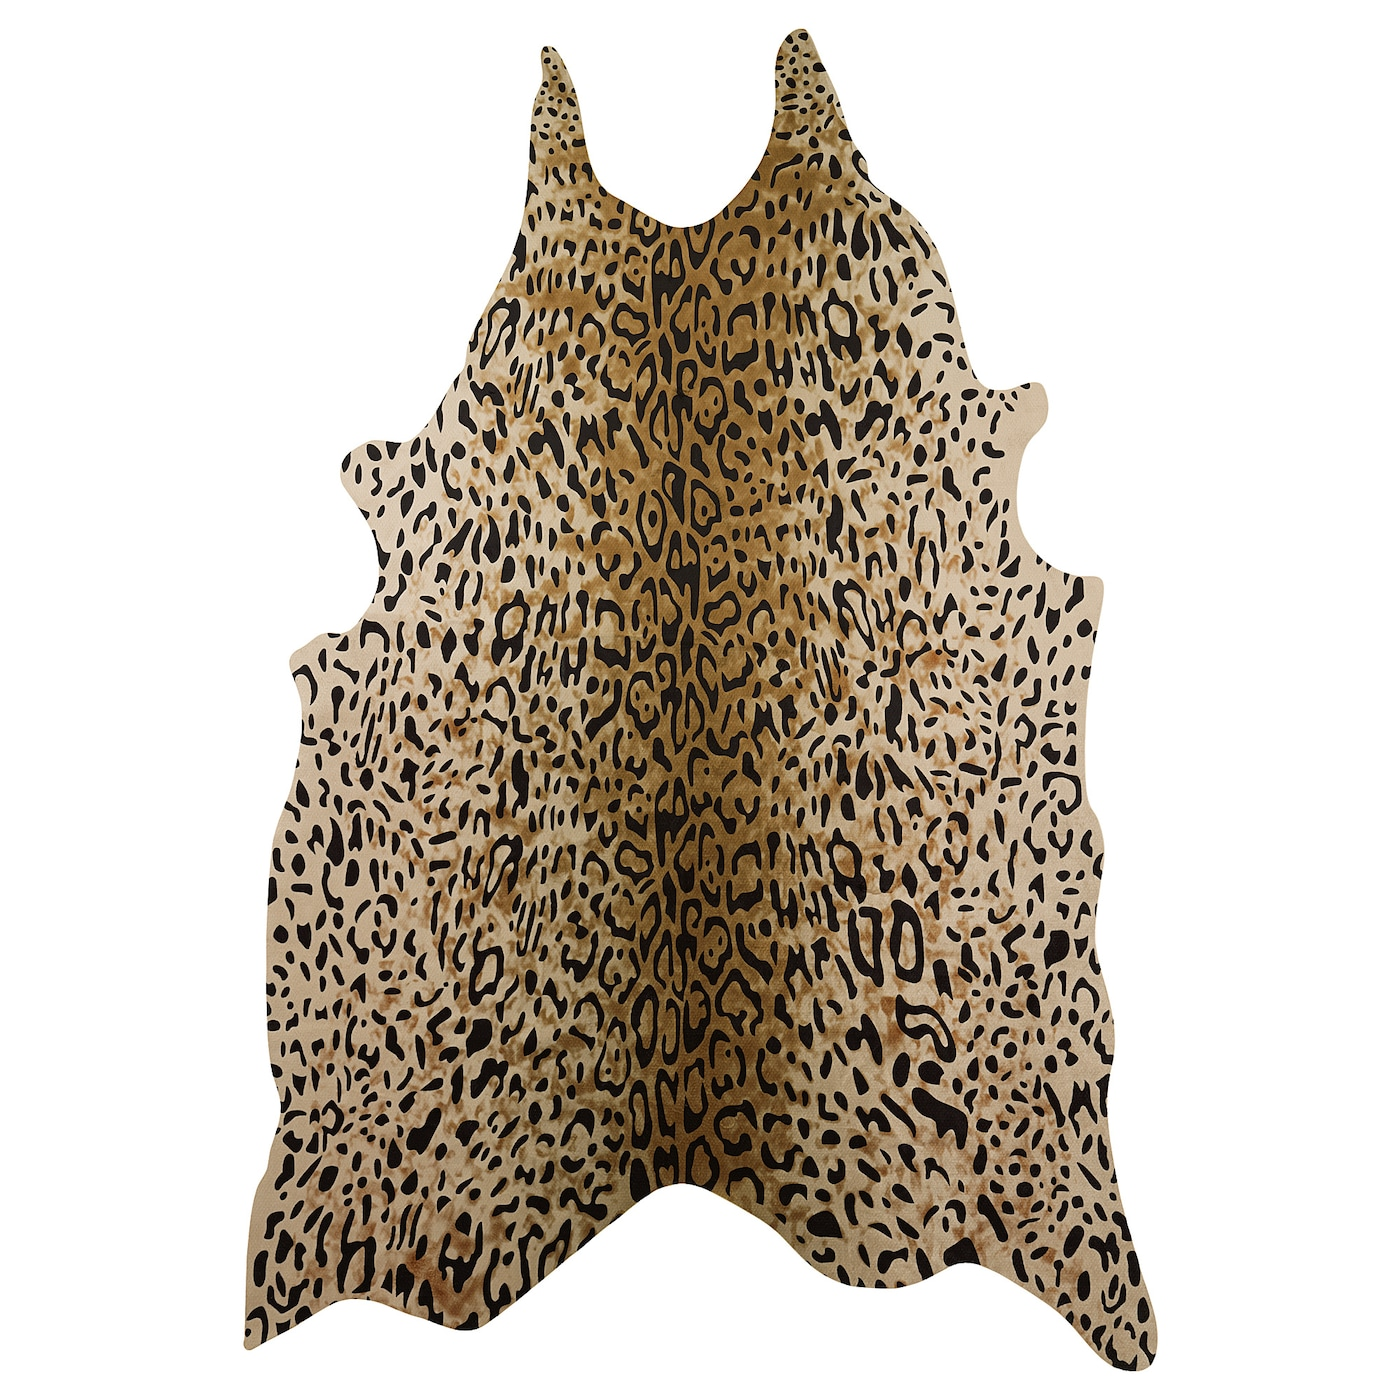 rug update transitional offers that construction x cream viscose features soft a with pin muted ultra the an obsession you your this background leopard